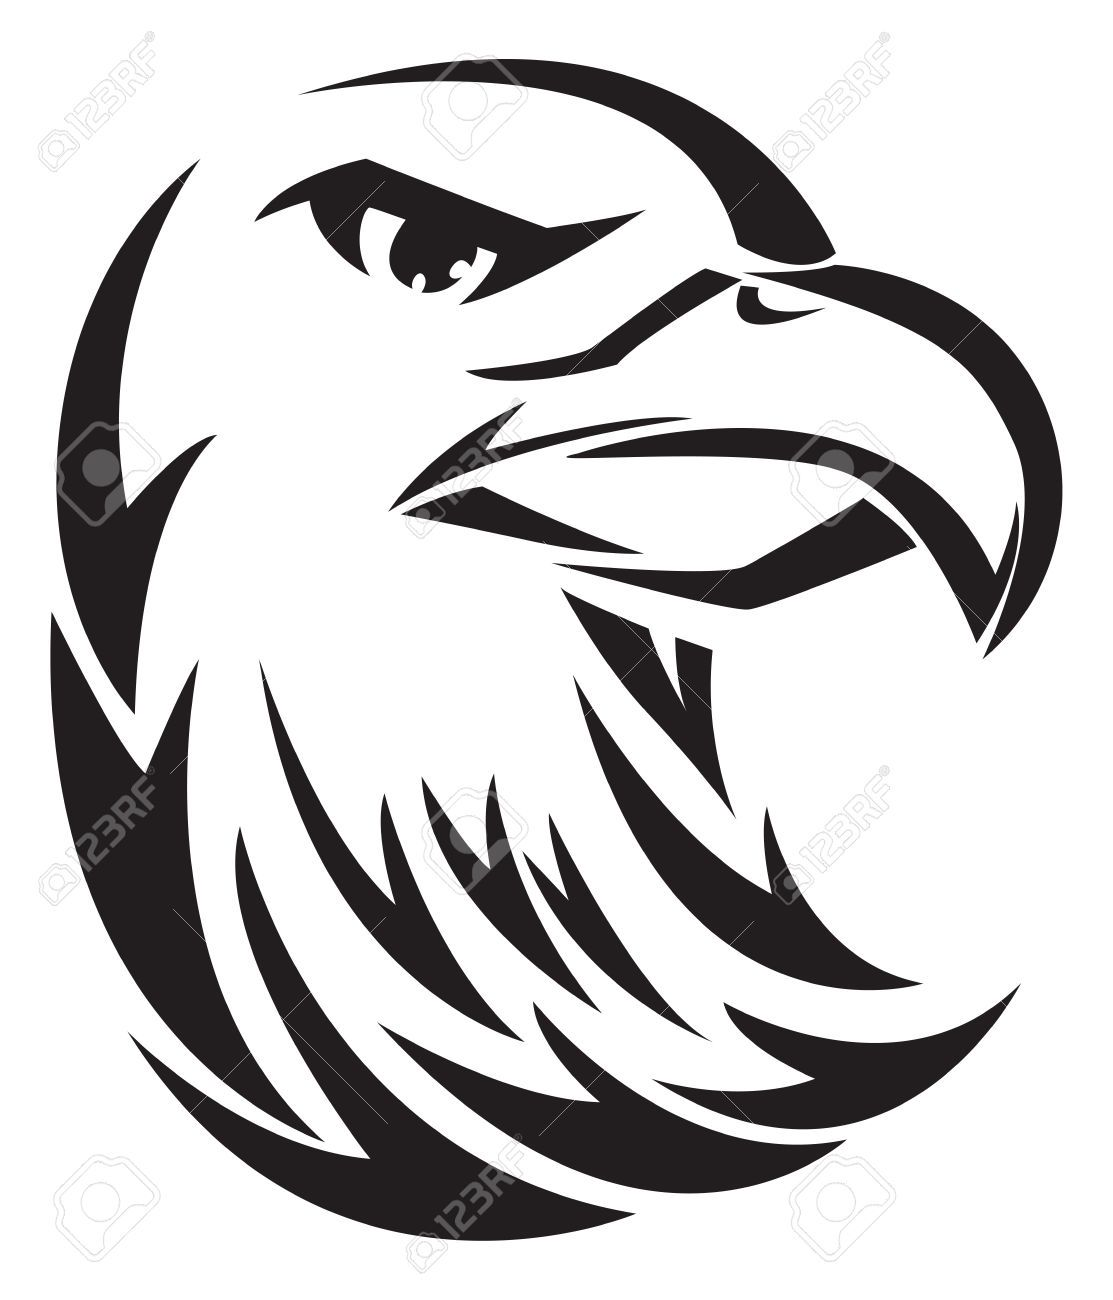 Hawk head clipart vector black and white library Hawk Head Stock Vector Illustration And Royalty Free Hawk Head ... vector black and white library